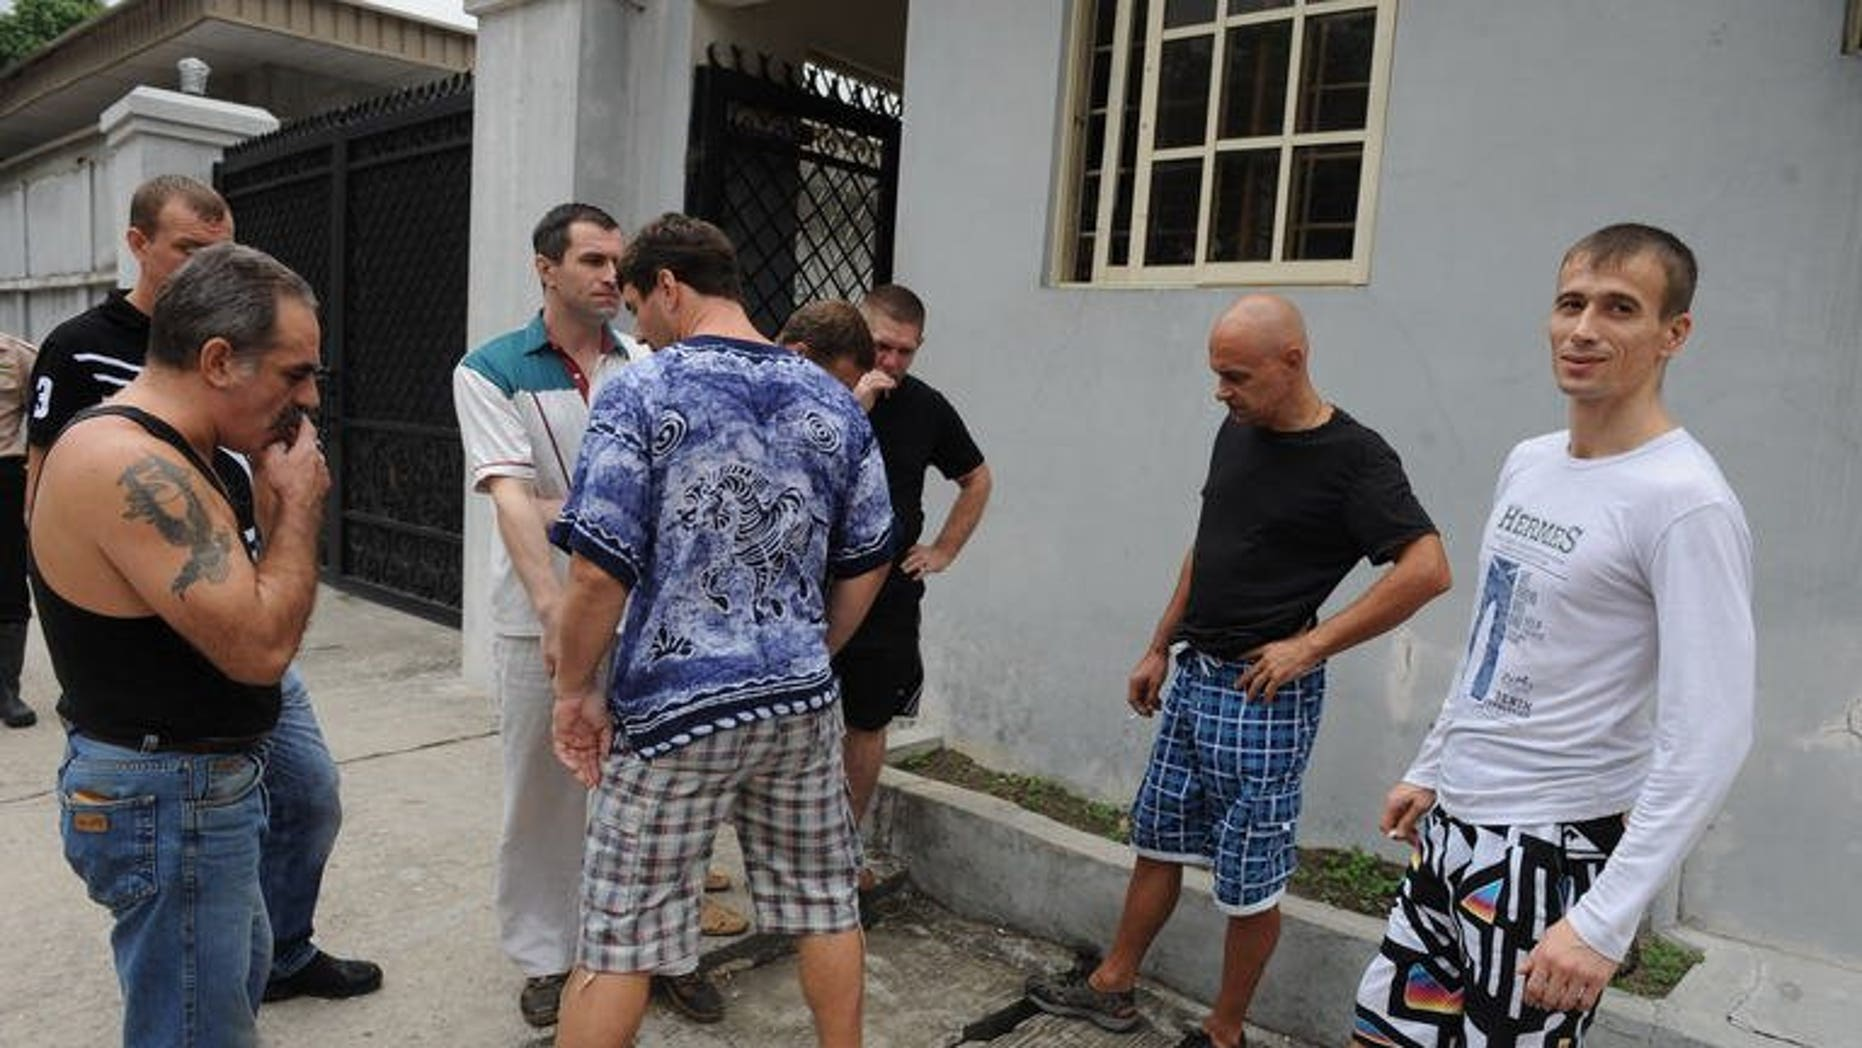 Russian sailors outside a Lagos courthouse on Tuesday during a hearing on claims of illegal possession of arms. The courtdismissed charges against eight of 15 Russian seamen arrested in October, but set a trial date for later this week for the others.